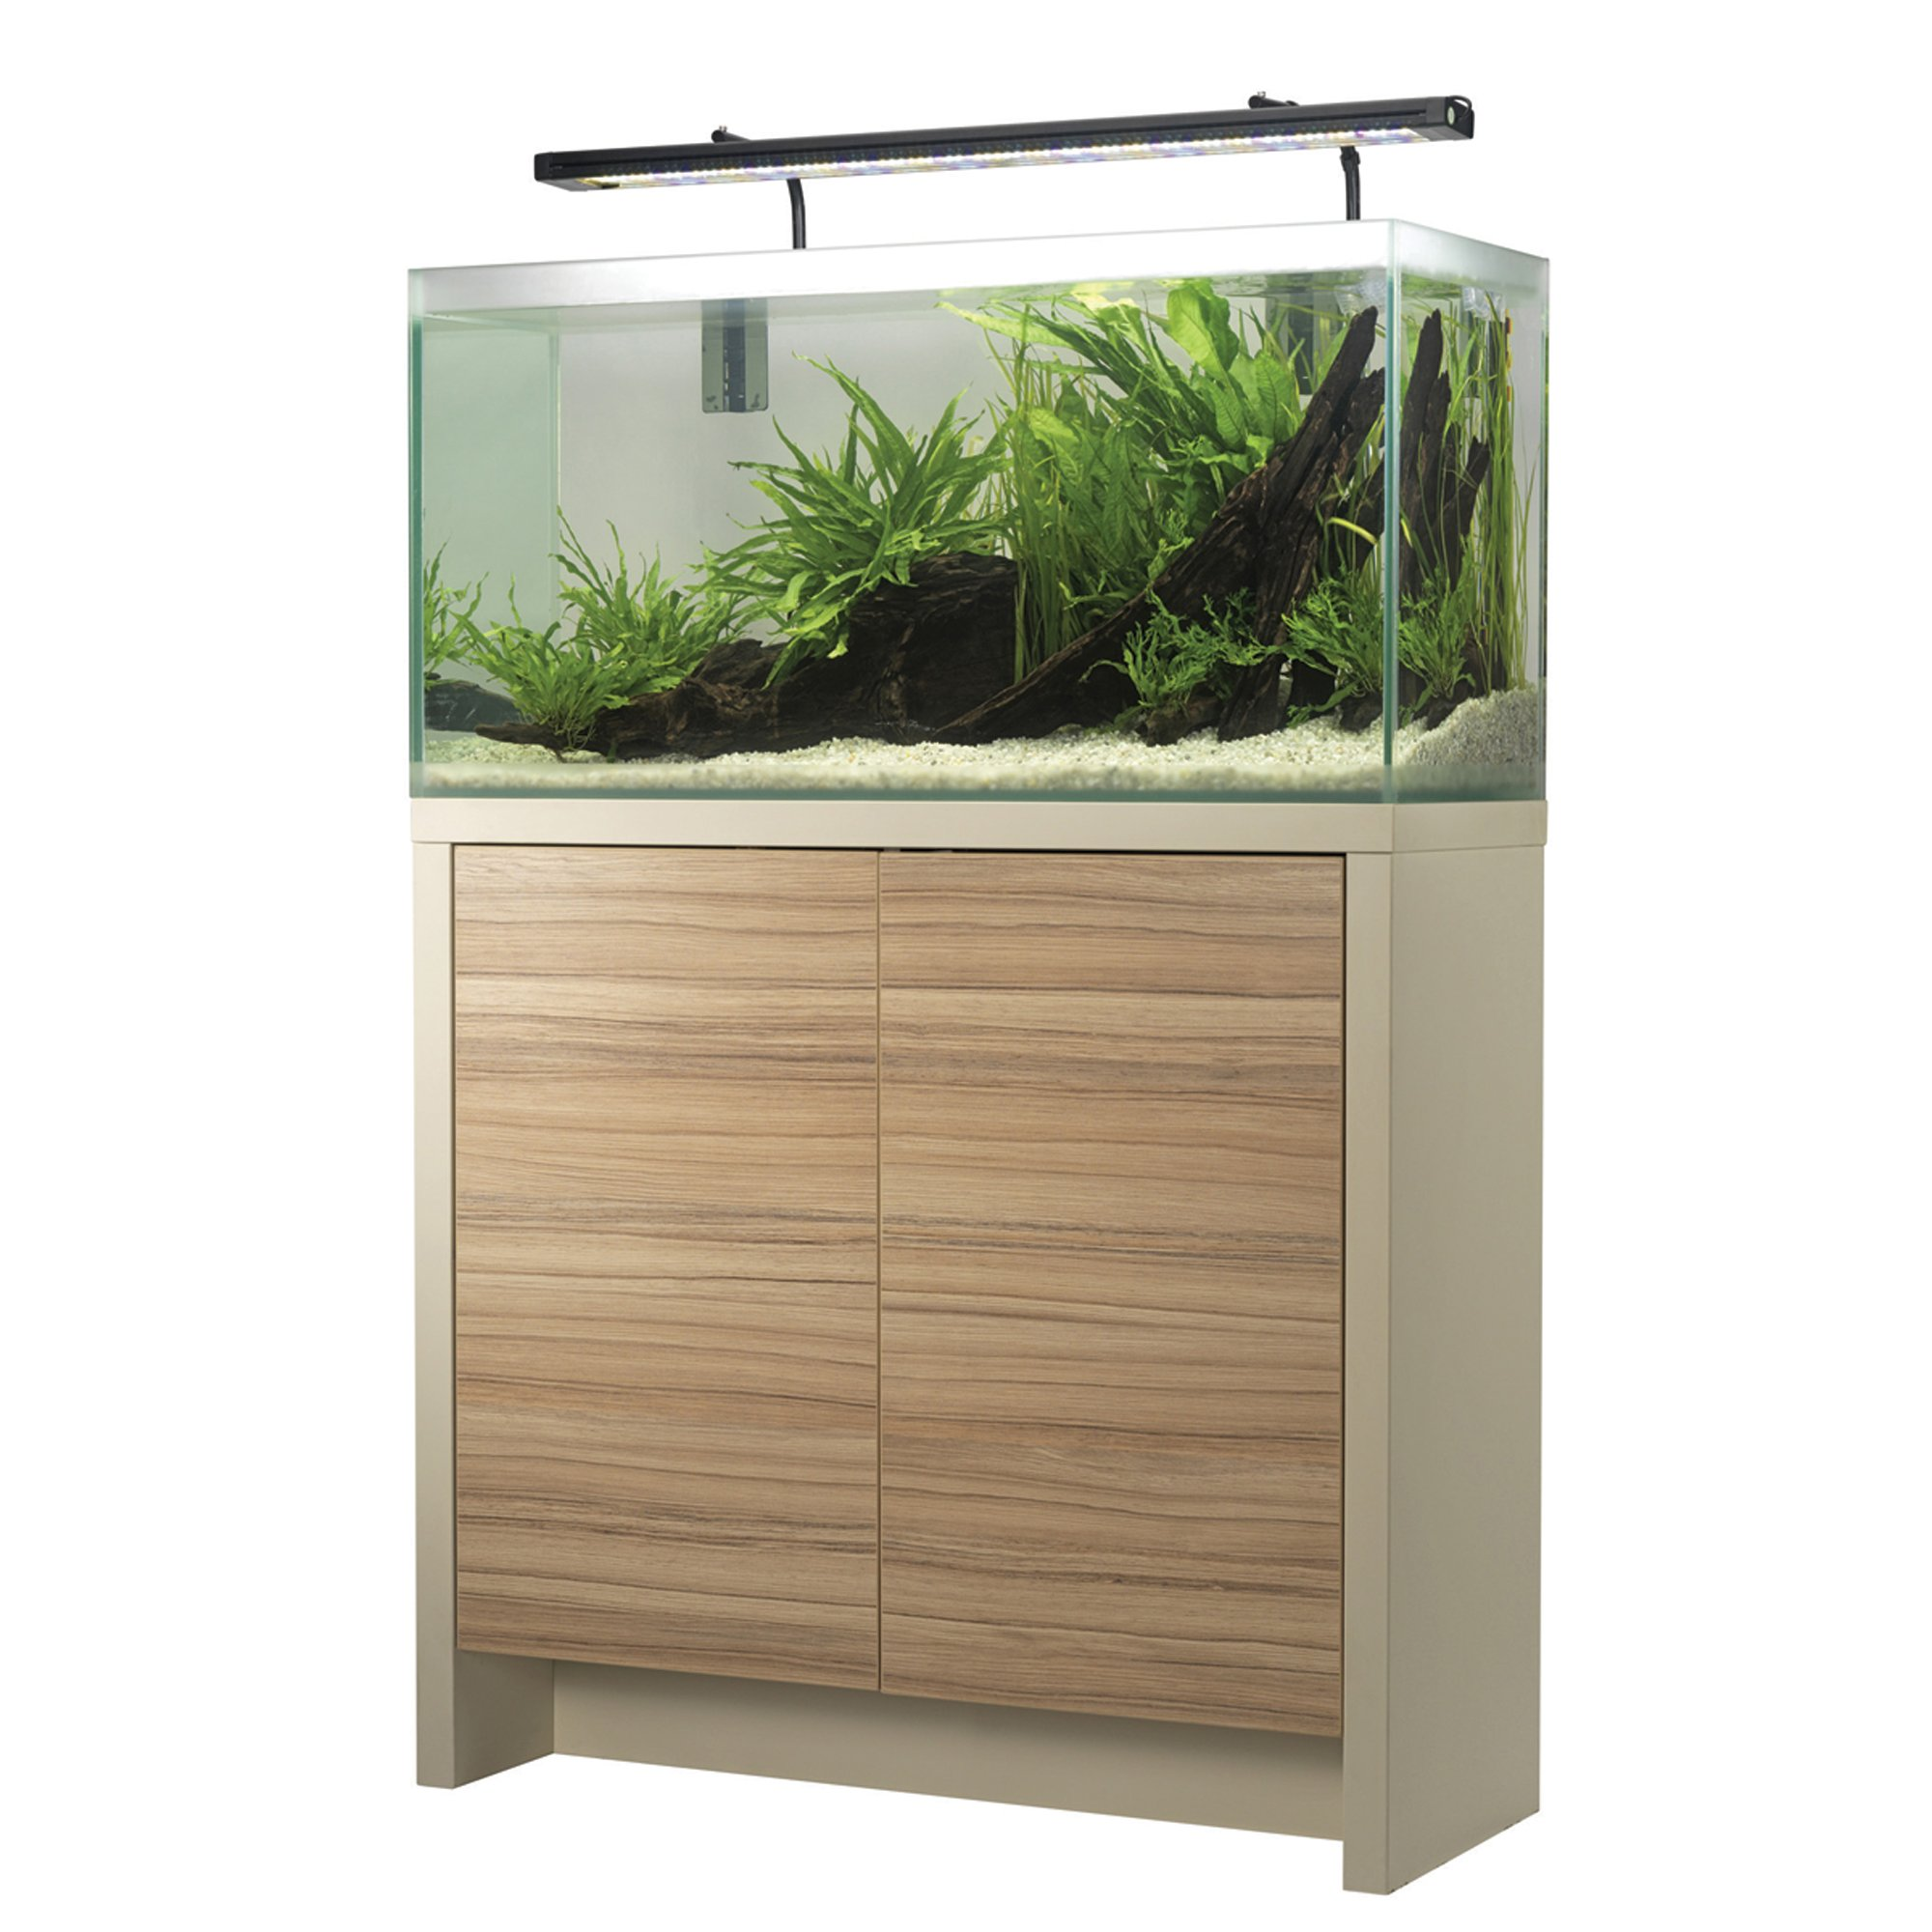 Fluval Freshwater F90 Aquarium Set 34 Gallon Petco